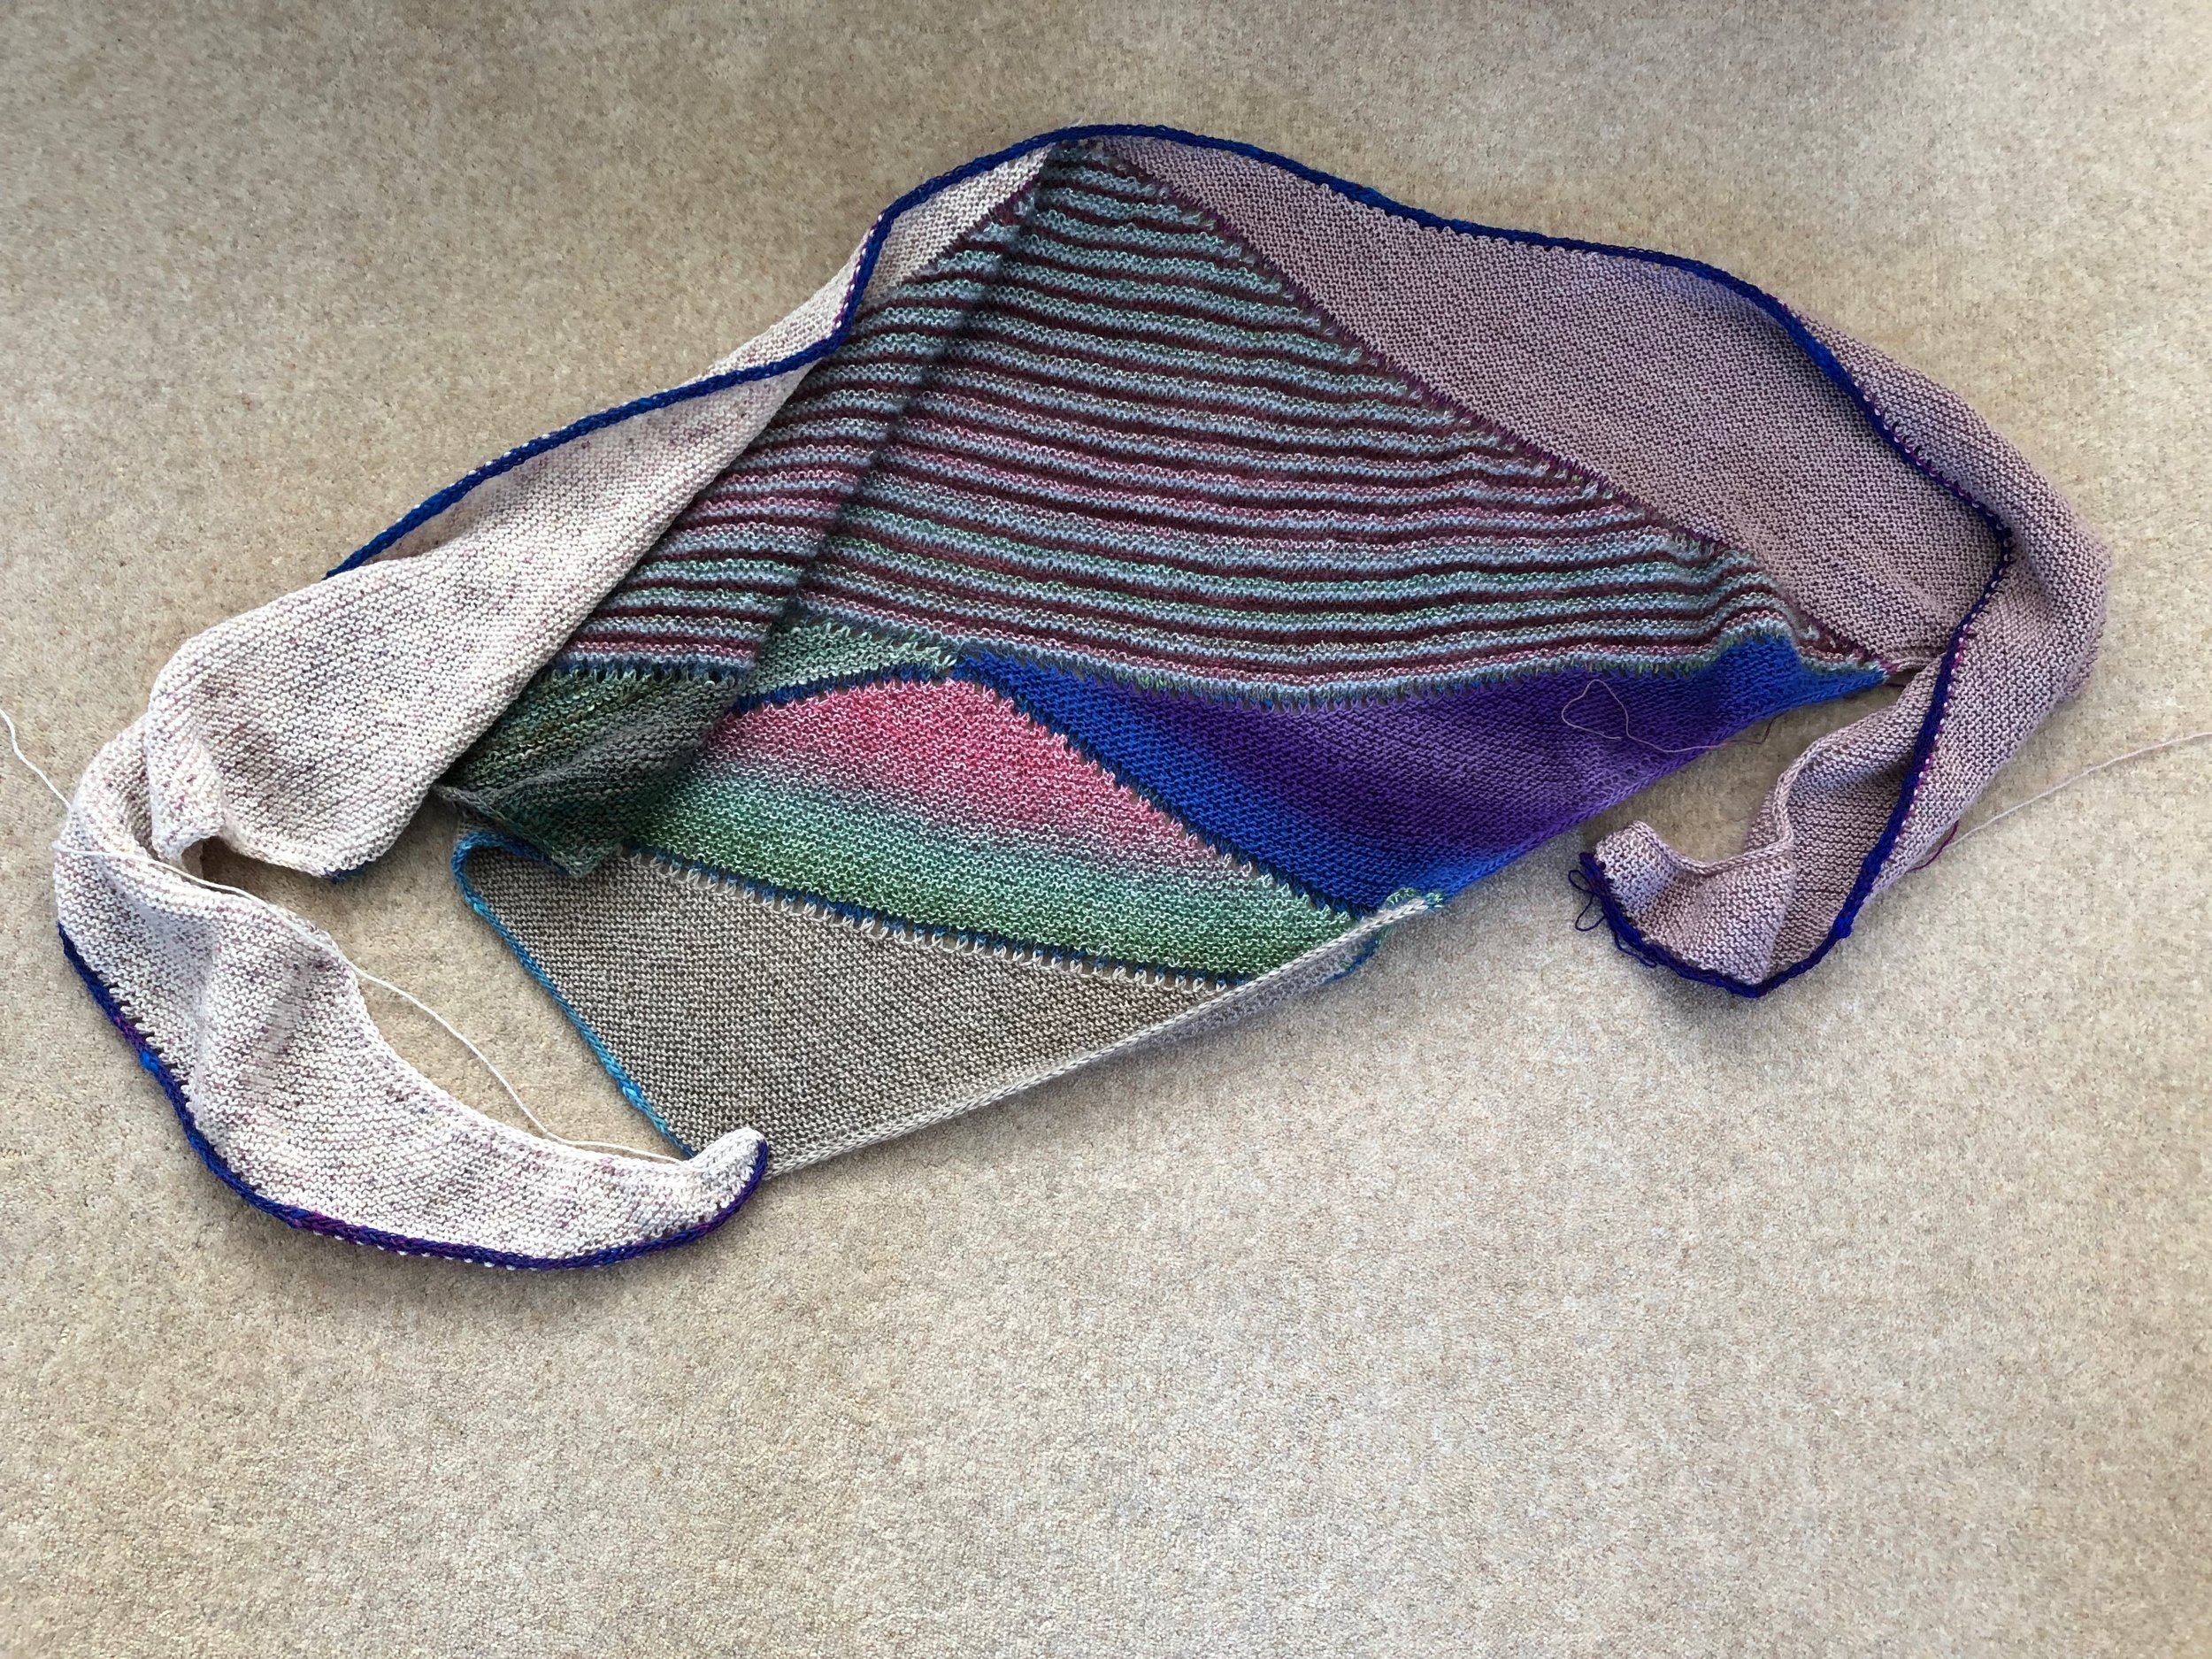 Spring Cleaning Shawl by Stephen West https://www.ravelry.com/patterns/library/spring-cleaning-shawl-2